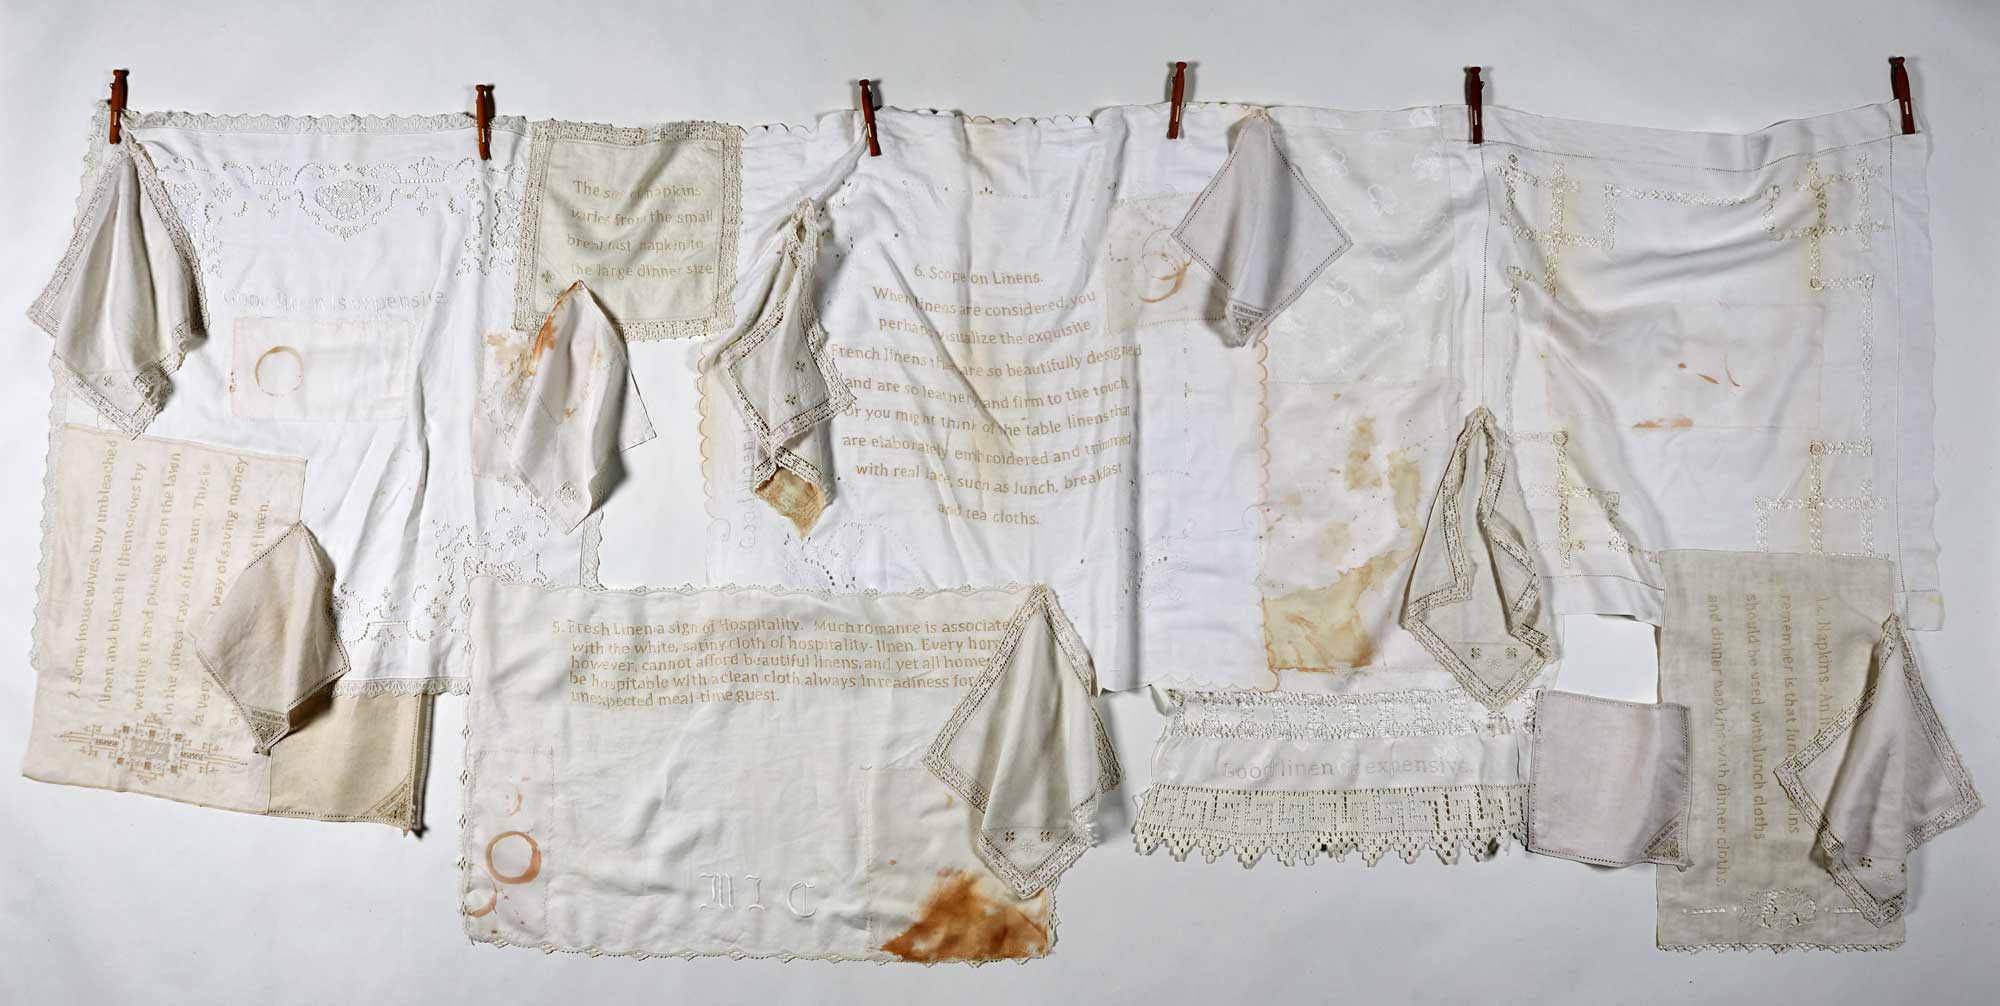 <strong>IRRELEVANT OBJECTS</strong> 2012  <strong>|</strong> 270 cm X 130 cm. Vintage table linens, silk organza, embroidery floss.